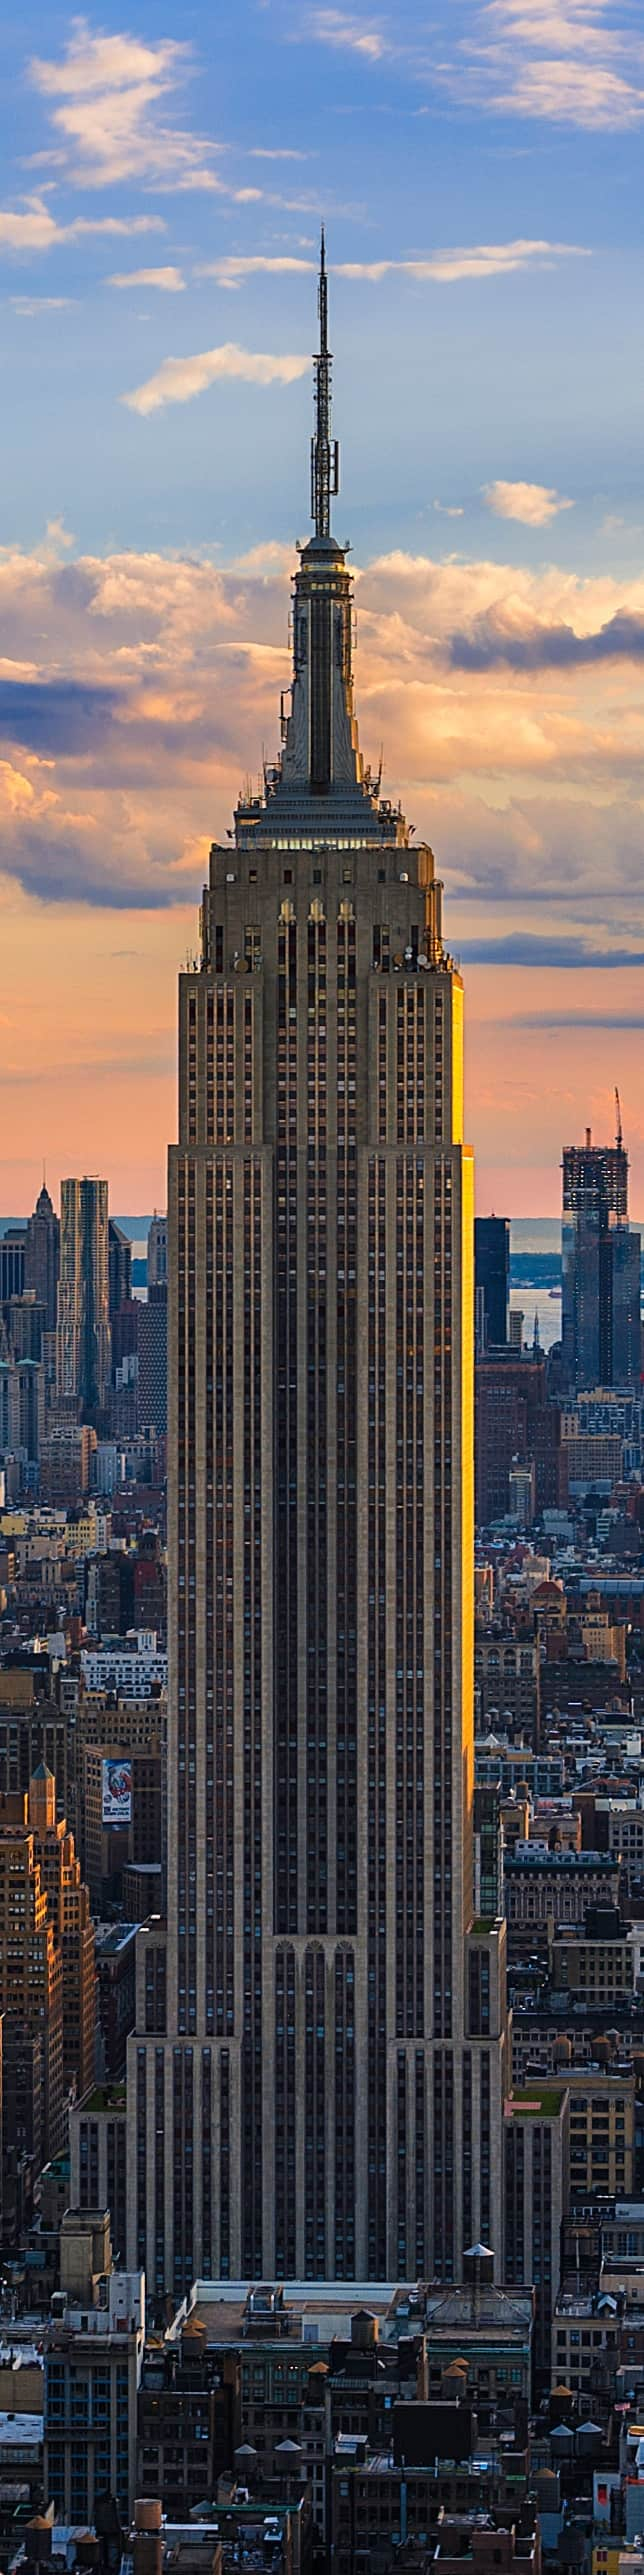 #28 The Empire State Building is a 102 story skyscraper